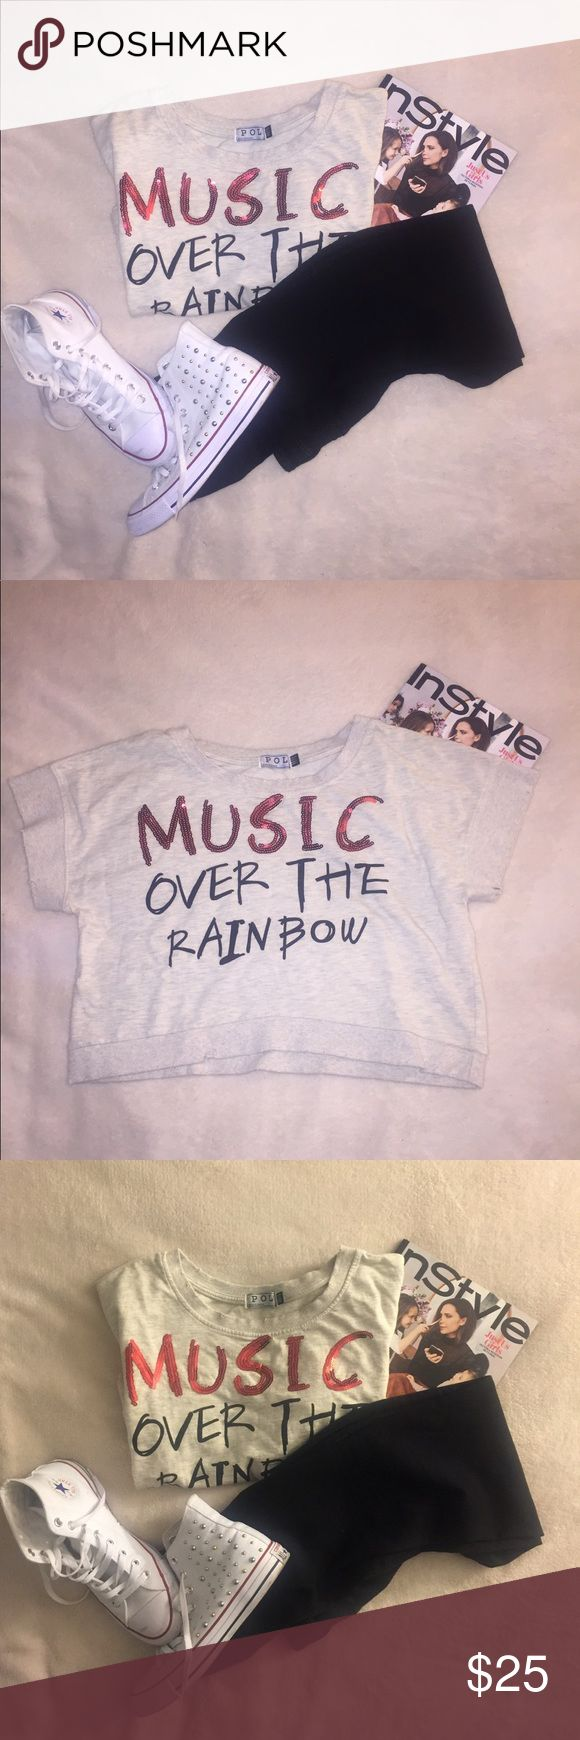 Gray crop sweater Gray Cropped distressed 'Music over the Rainbow' sweater. Bought this at Lil Wayne's ex wife's boutique in New Orleans. Brand is POL. Worn once. No signs of wear. Great crop top. Zara for exposure. Zara Tops Crop Tops